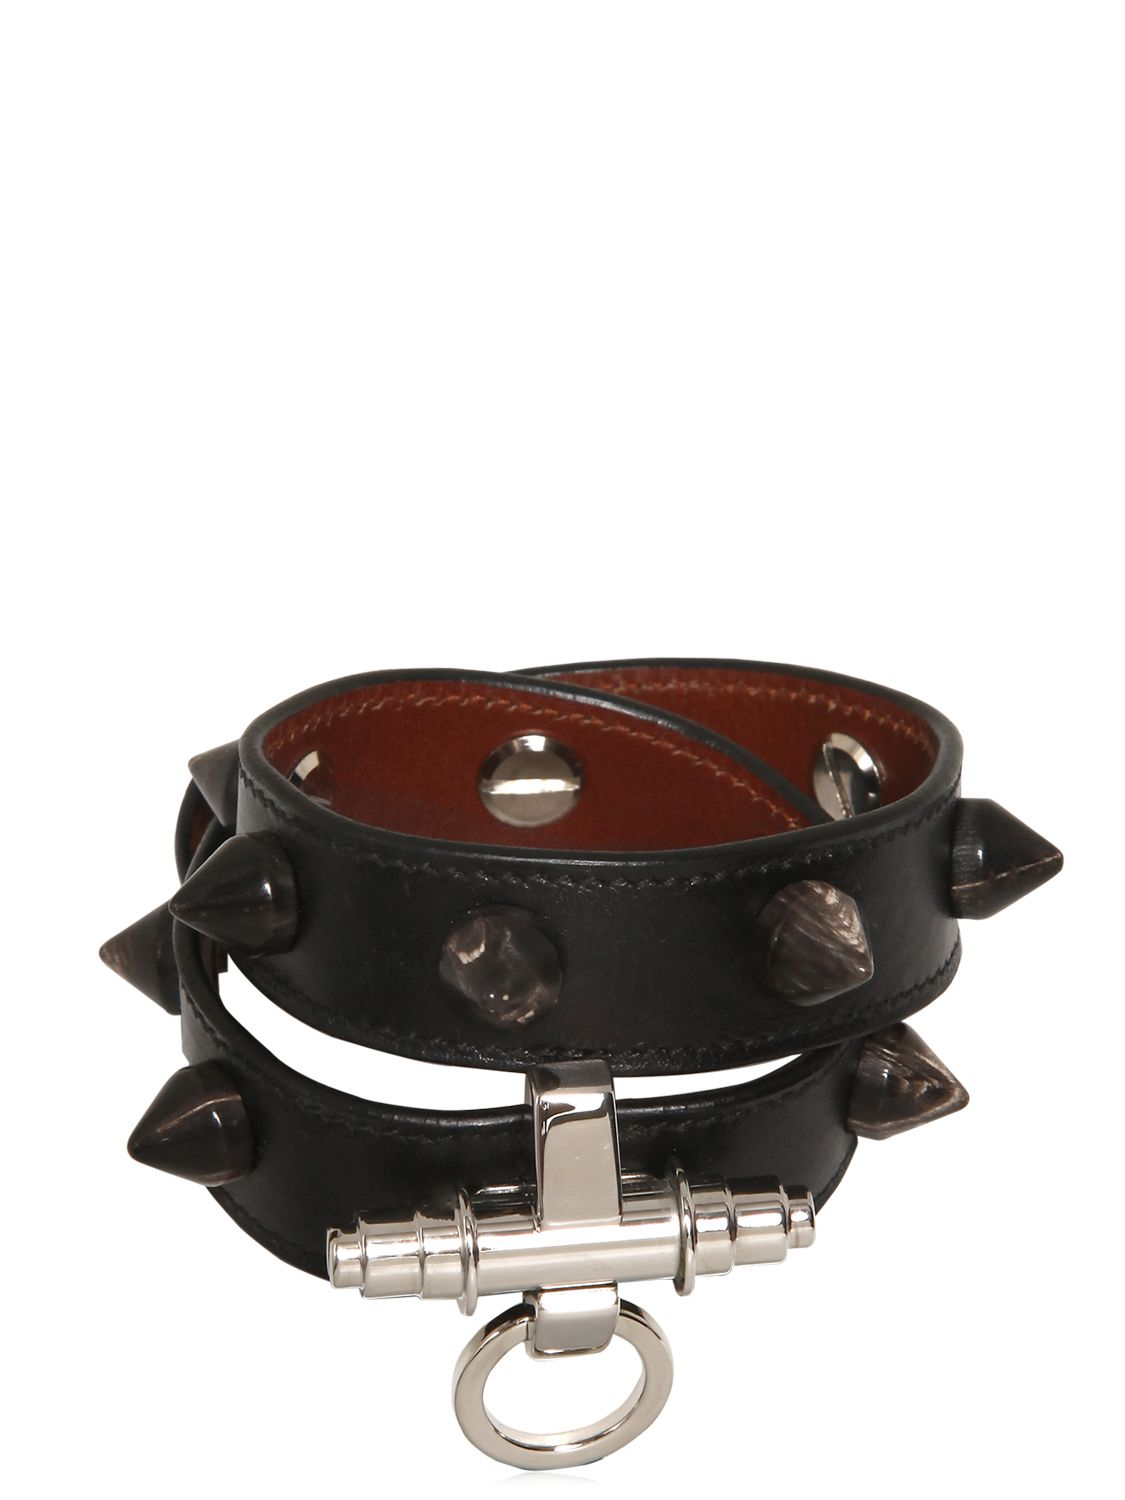 Givenchy 2 Rows Obsedia Studded Leather With Horn in Black